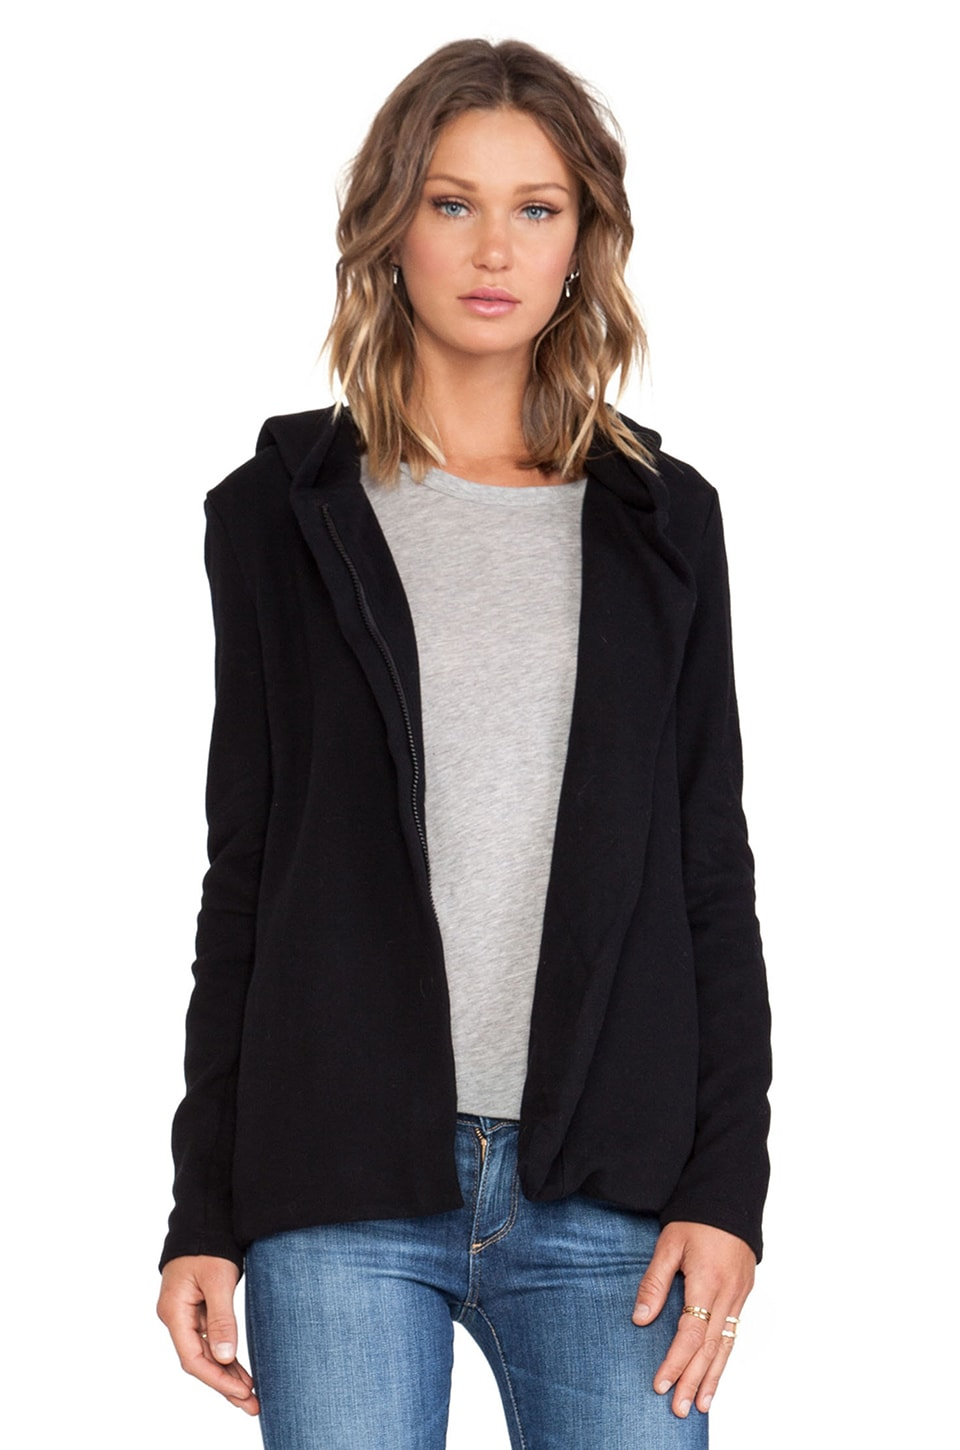 James Perse Hooded Fleece Zip Jacket in Black